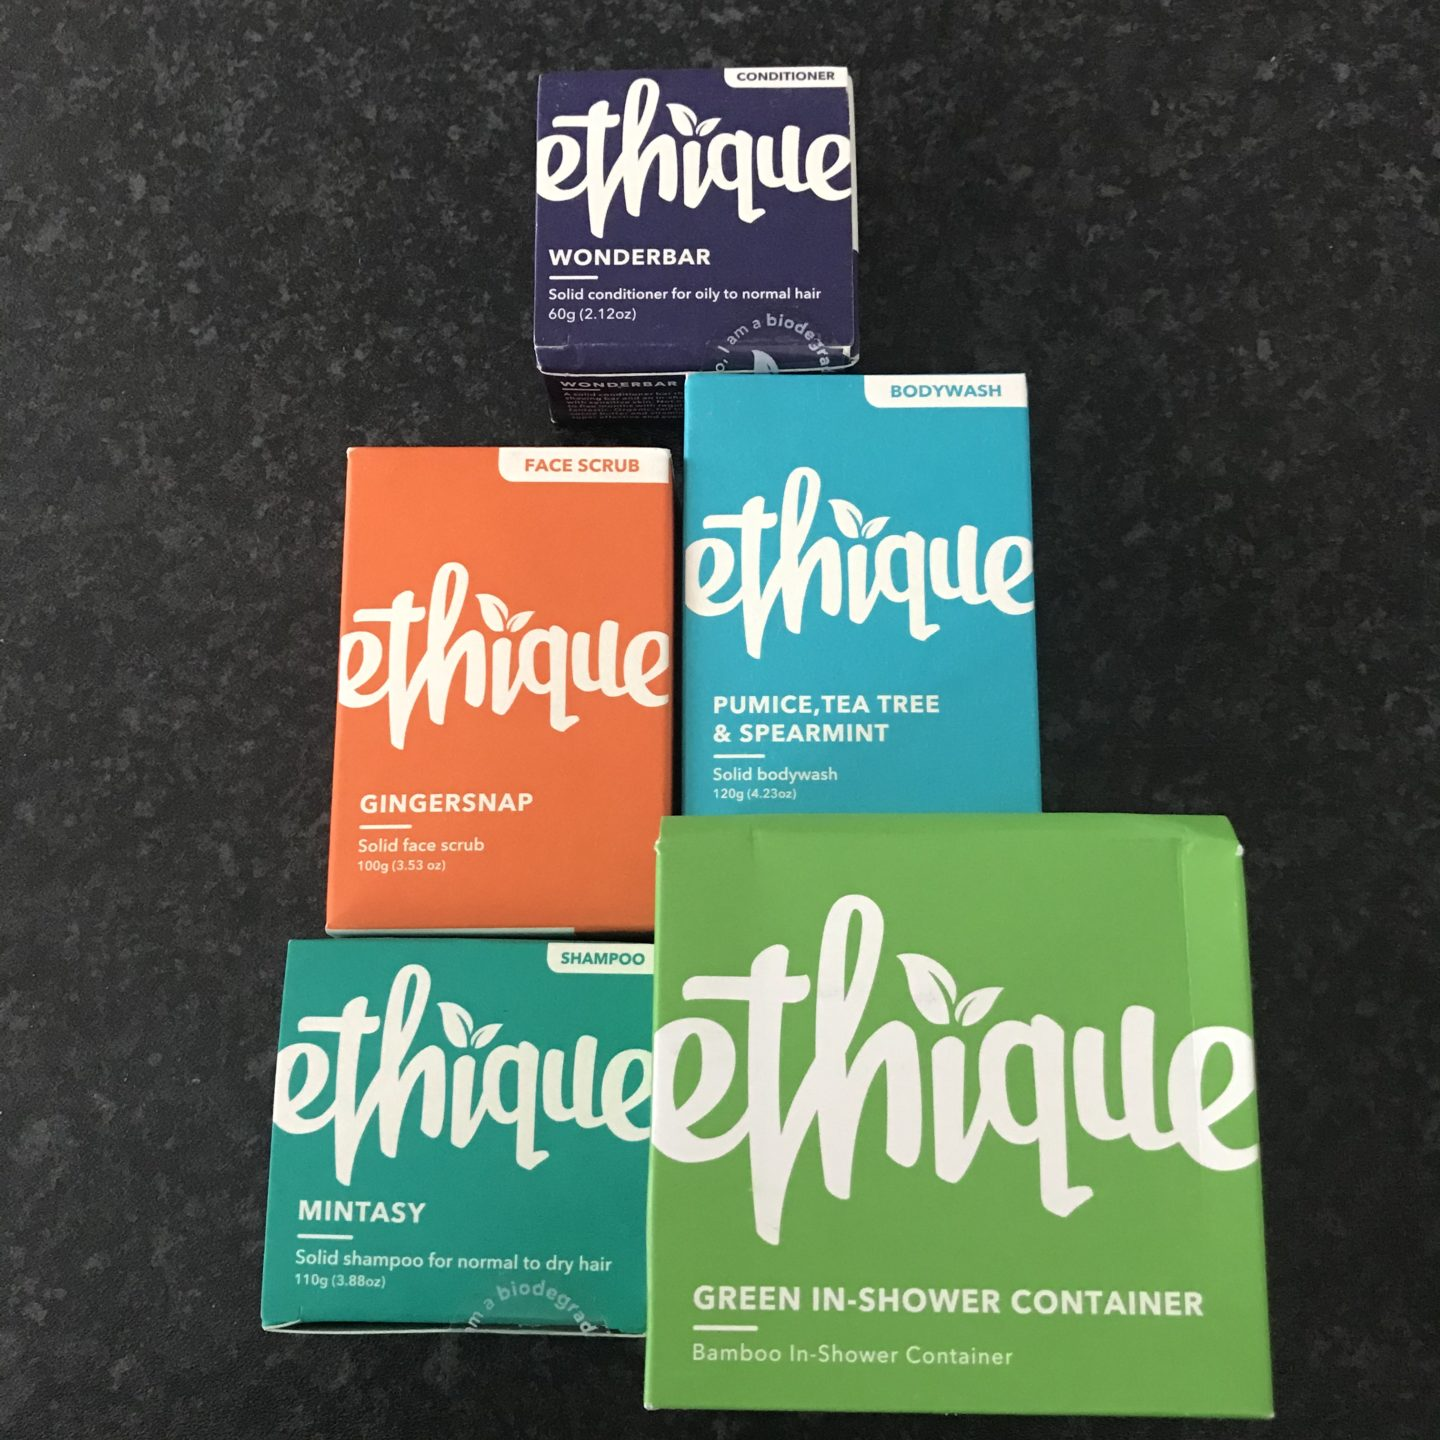 #ethique, ethique shampoo, ethique conditioner,  ethique beauty, ethique conditioner, ethique bar, waste free living, waste free products, zero waste lifestyle, zero waste living, zero waste tips, zero waste bathroom,zero waste products, zero waste beauty,  zero waste swaps, zero waste skincare